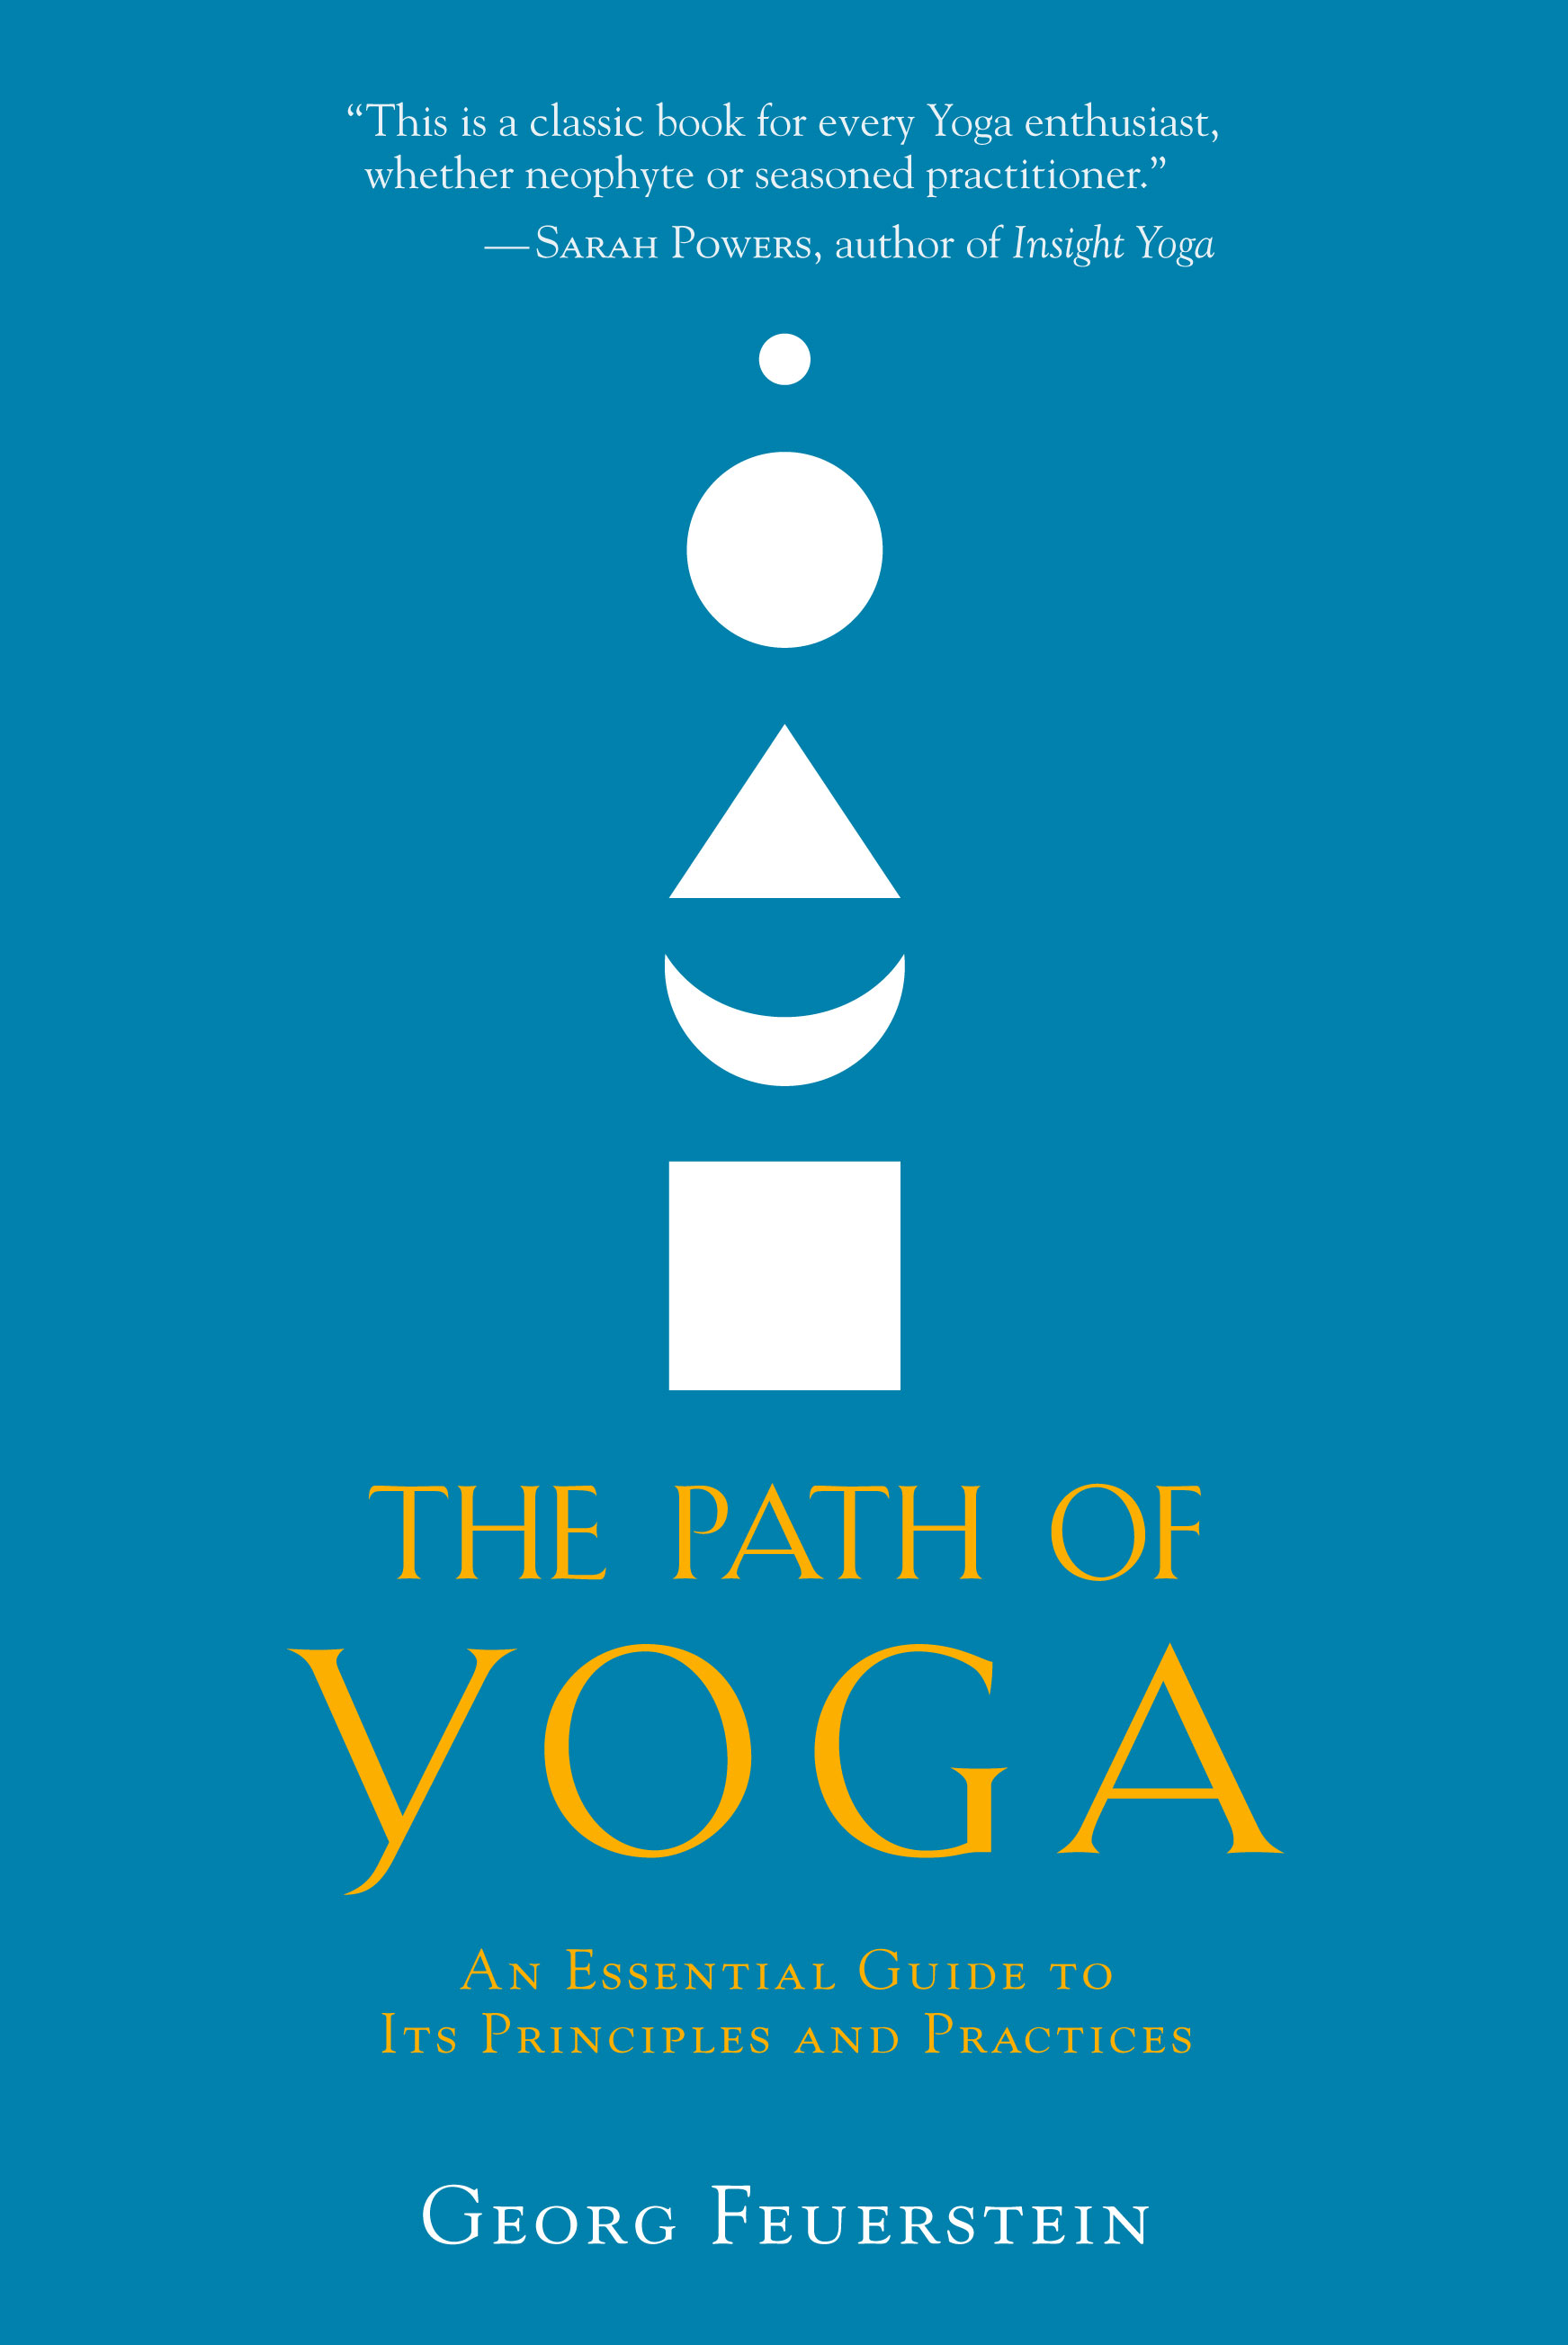 The Path of Yoga: An Essential Guide to Its Principles and Practices By: Georg Feuerstein